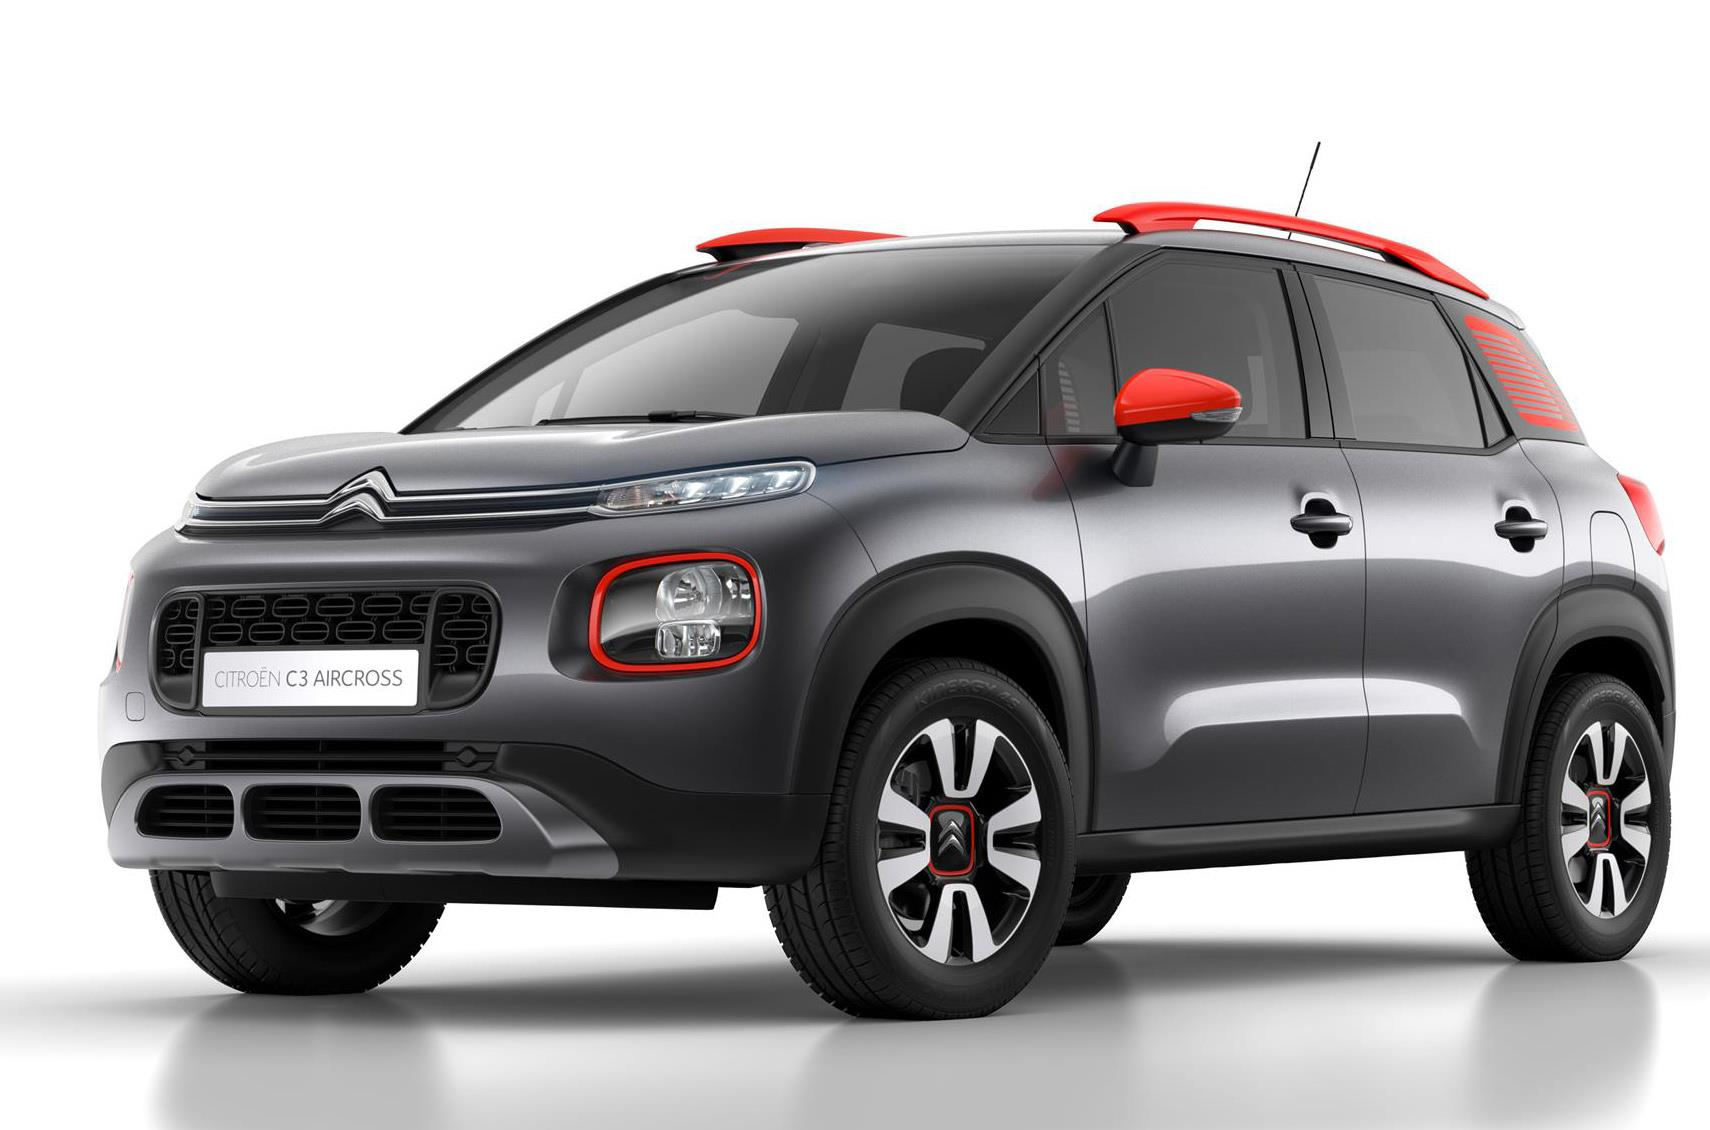 2017 citroen c3 aircross technical specifications and data. Black Bedroom Furniture Sets. Home Design Ideas